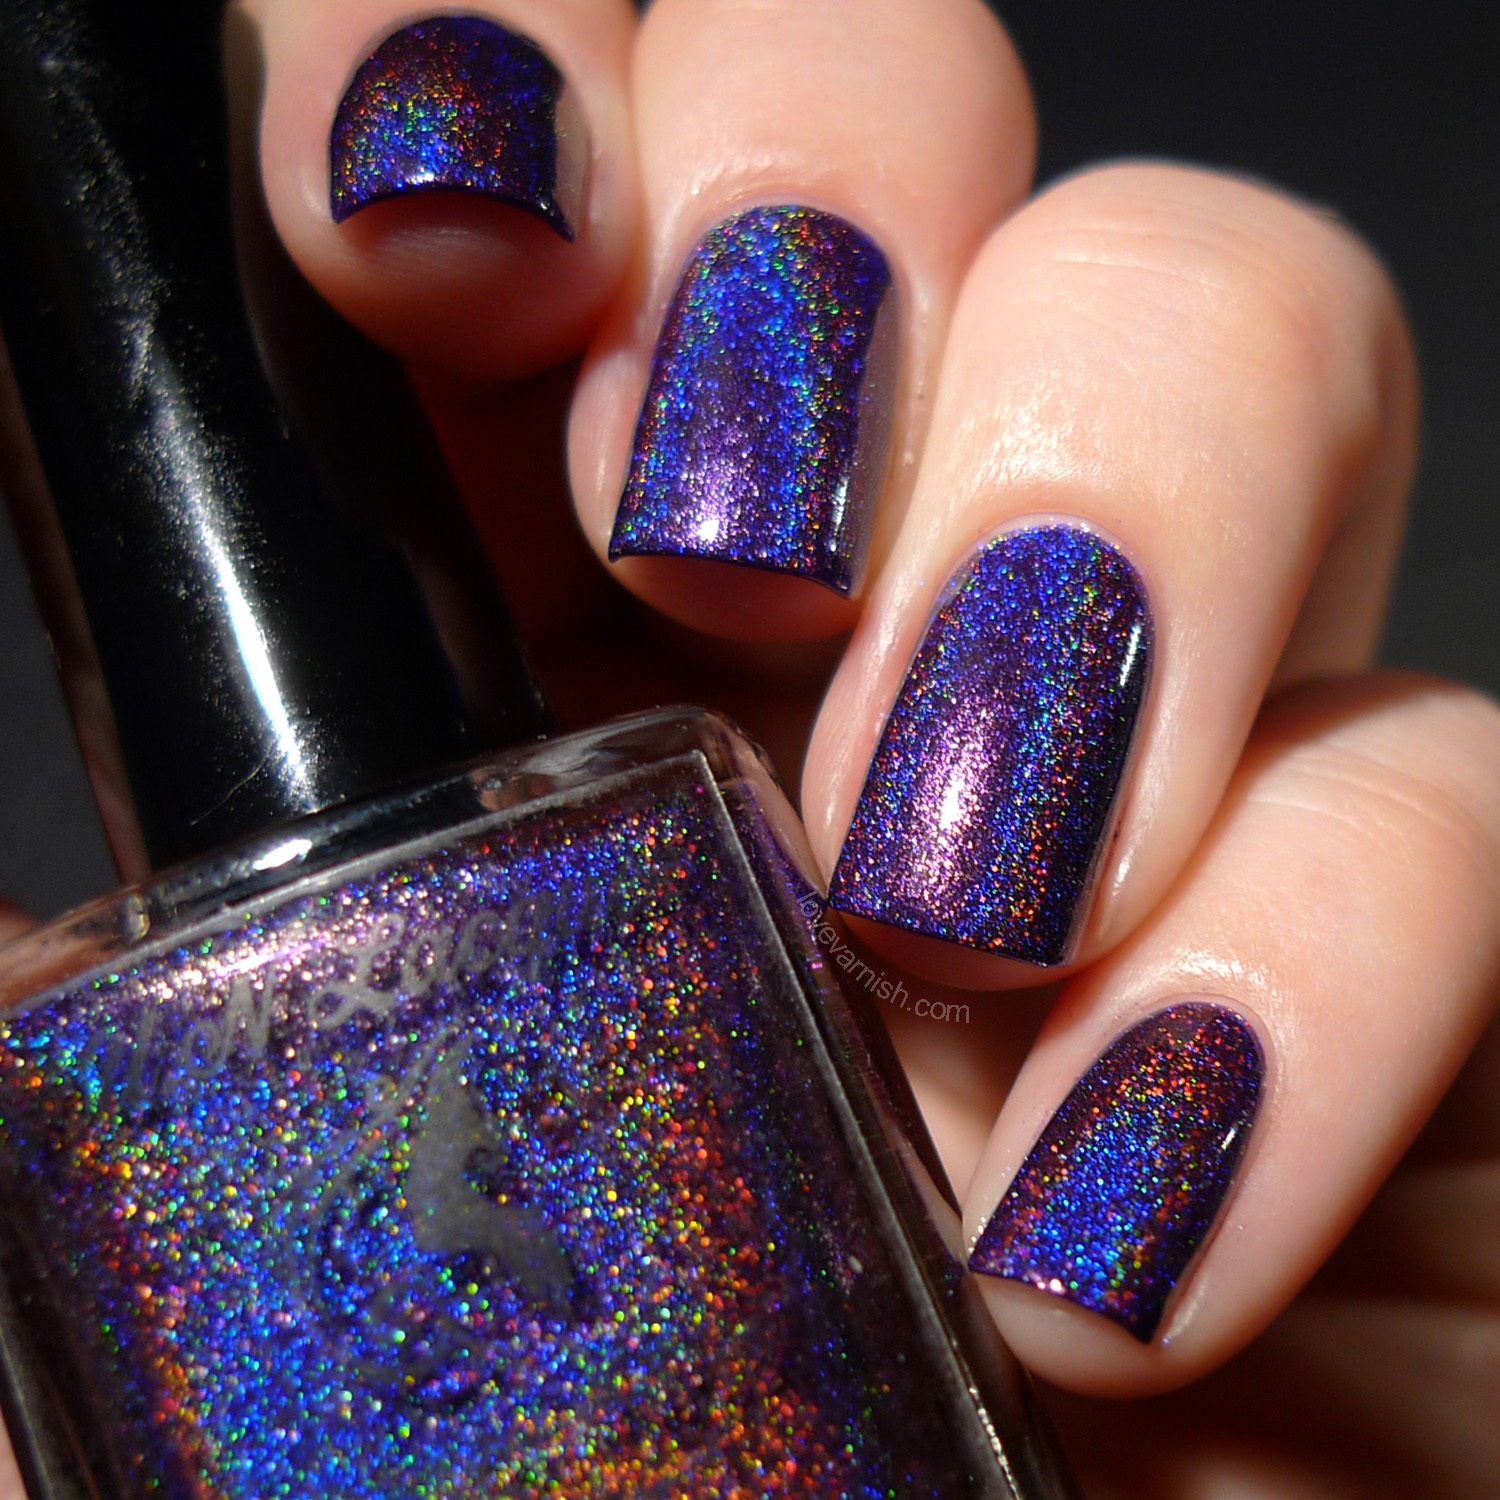 F.U.N Lacquer Summer 2014 Evening Gown holographic